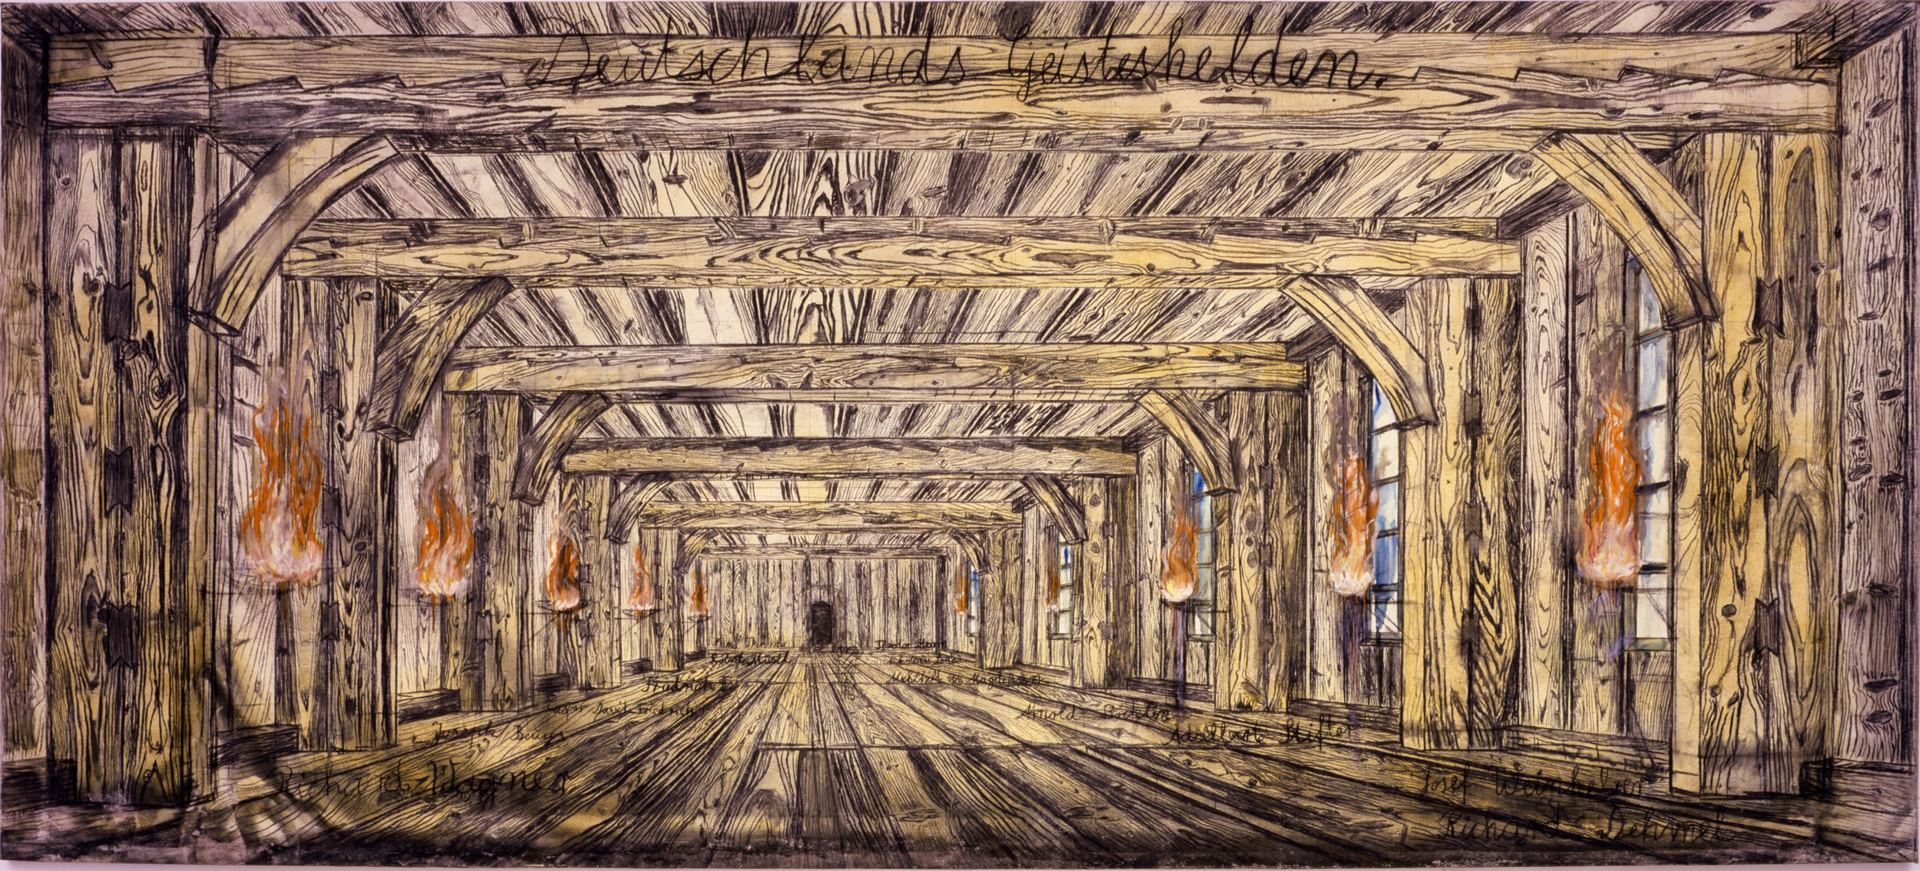 Anselm Kiefer. Germany and its spiritual leaders 1973